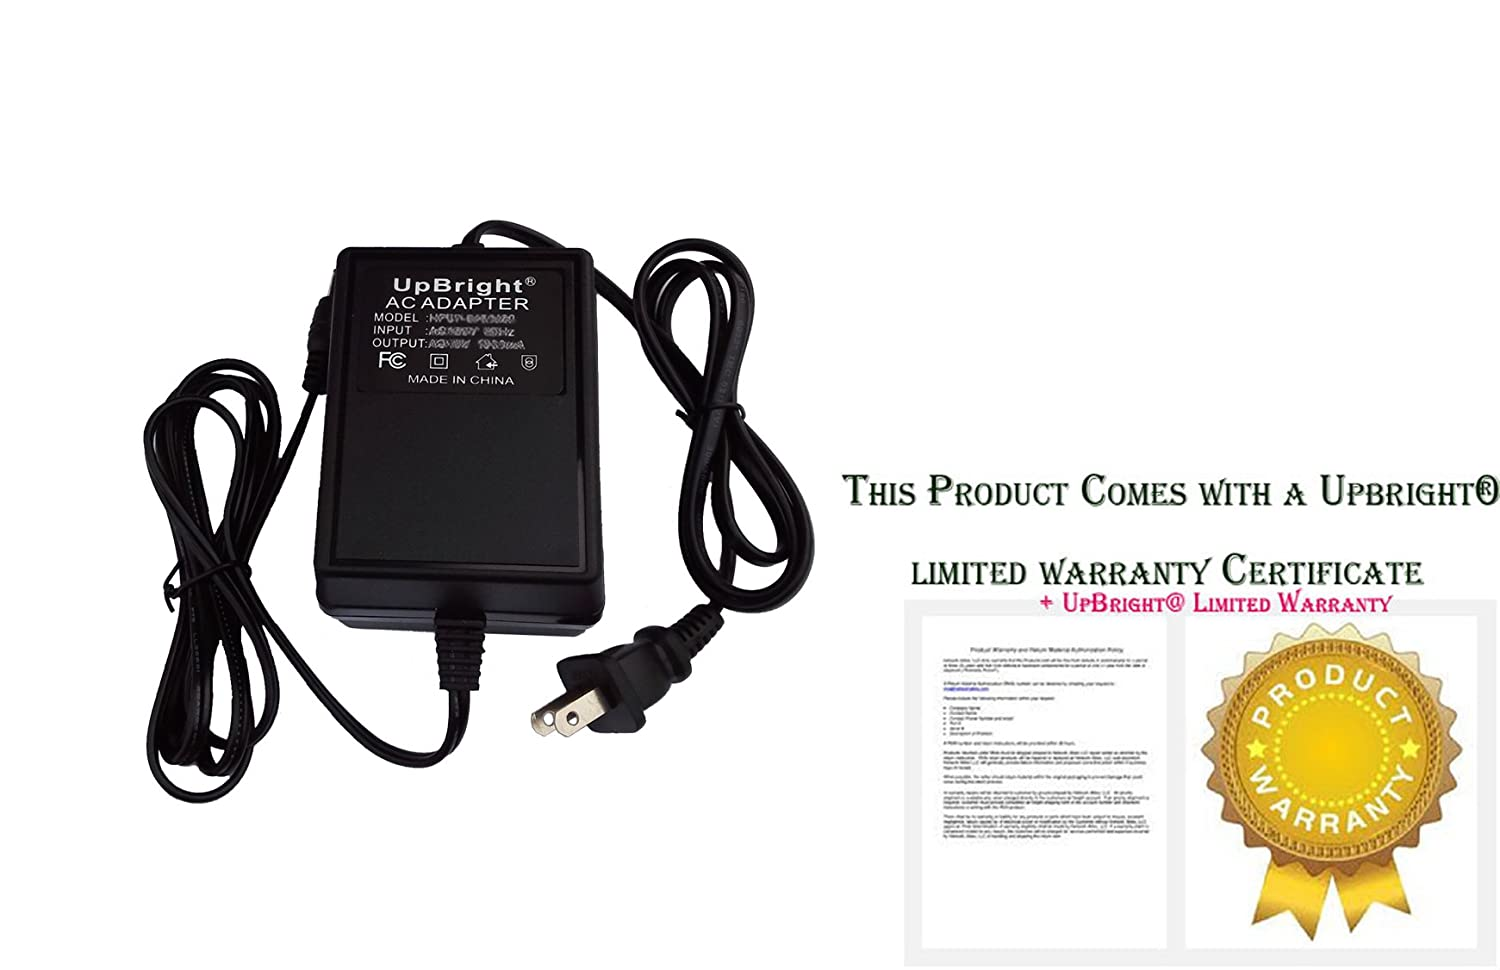 Amazon.com UpBright New AC Adapter For In Seat Solutions Inc # 15531 APX6636001 Voor la-z-boy lazy Seat My Lazy Boy Heat Massage Chair 12V AC 4170mA Class ...  sc 1 st  Amazon.com & Amazon.com: UpBright New AC Adapter For In Seat Solutions Inc ... islam-shia.org